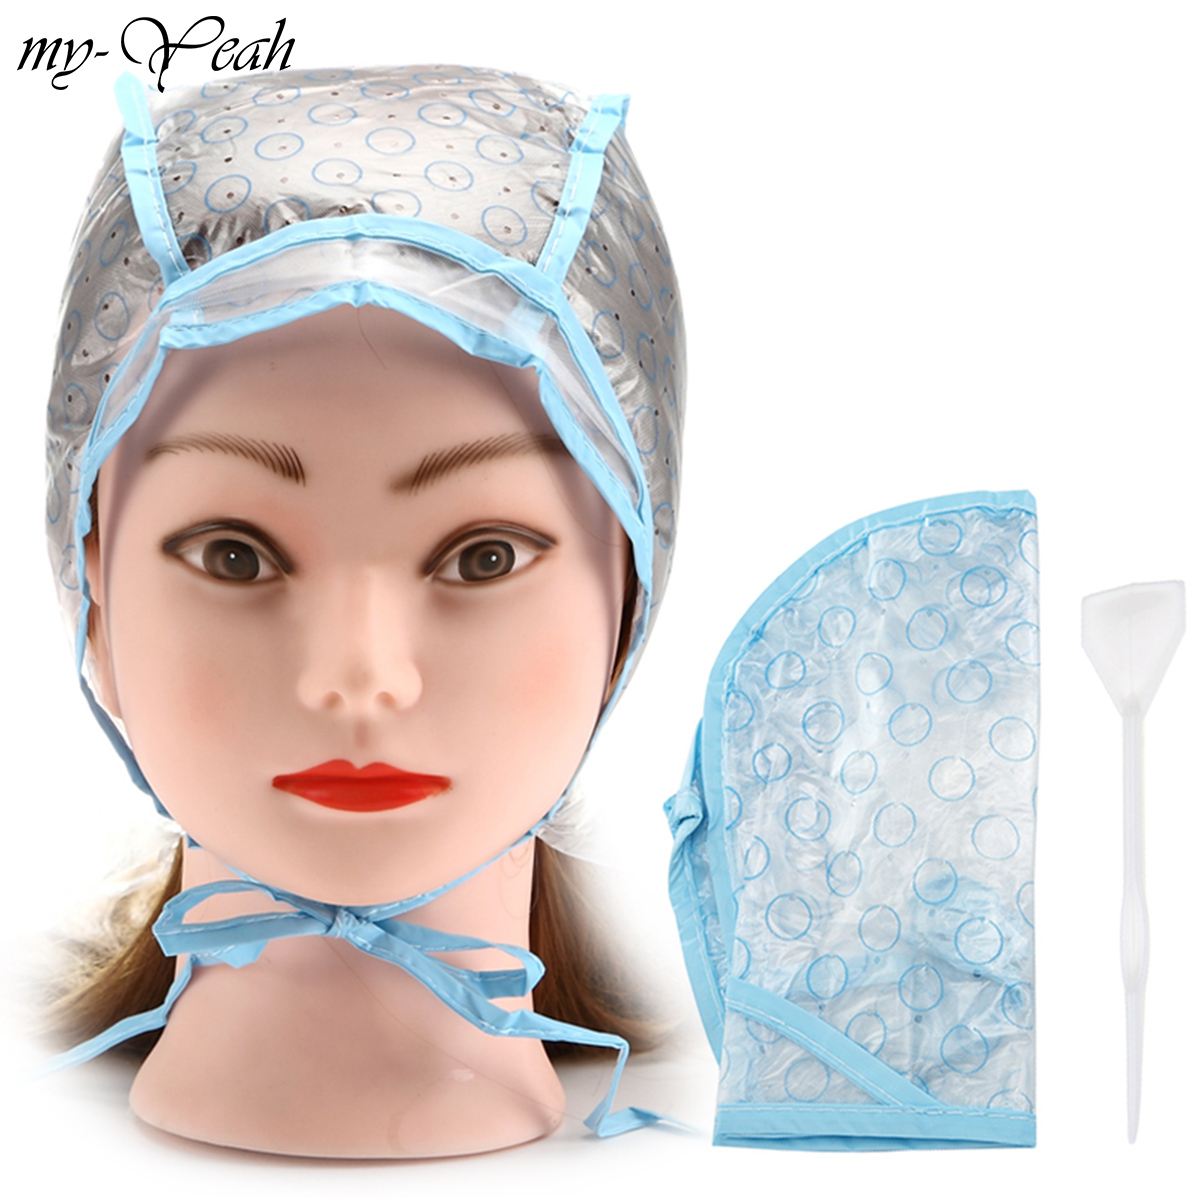 2pcs/set Hair Dyeing Cap + Hook Brush Coloring Highlighting Tinting Cover Protector DIY Home Use Pro Salon Hair Styling Tools